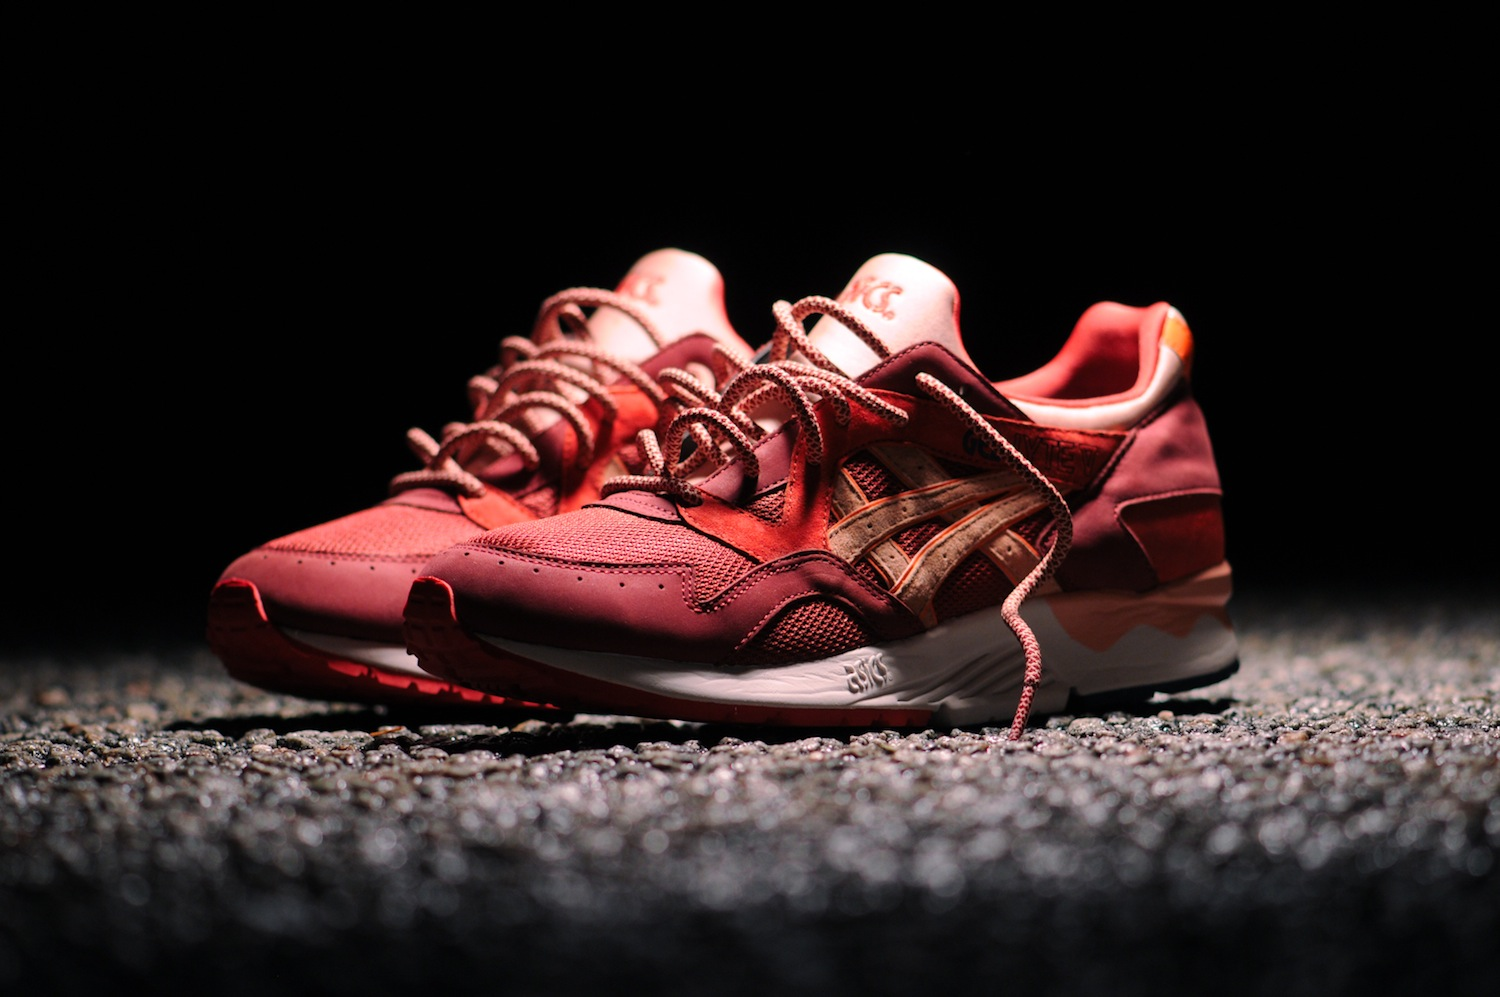 Top 10 Collaborations of October 2013 Ronnie Fieg x ASICS Gel Lyte V Volcano